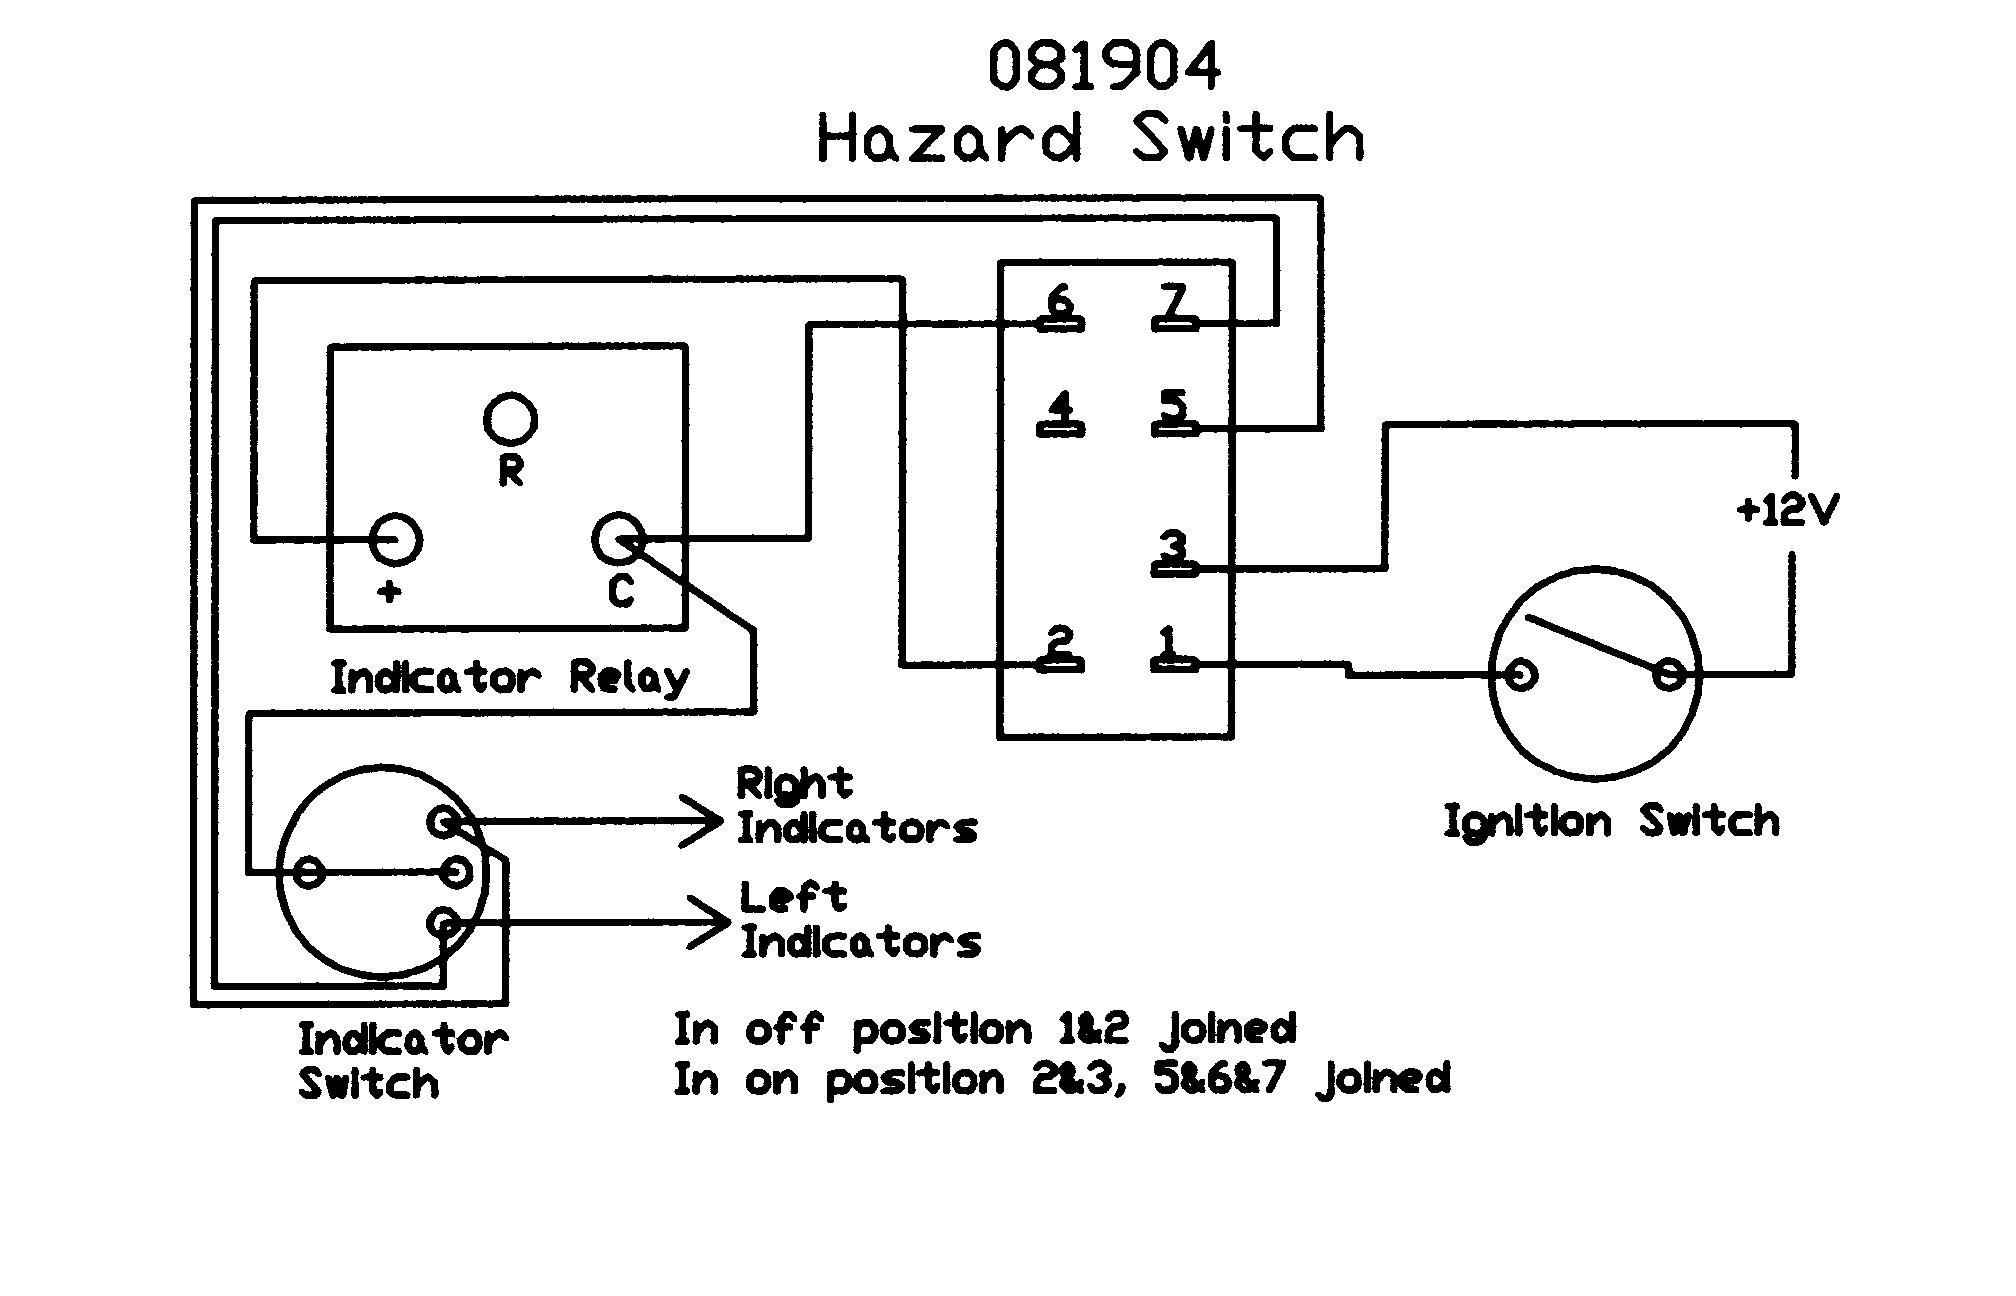 lucas hazard switch wiring diagram